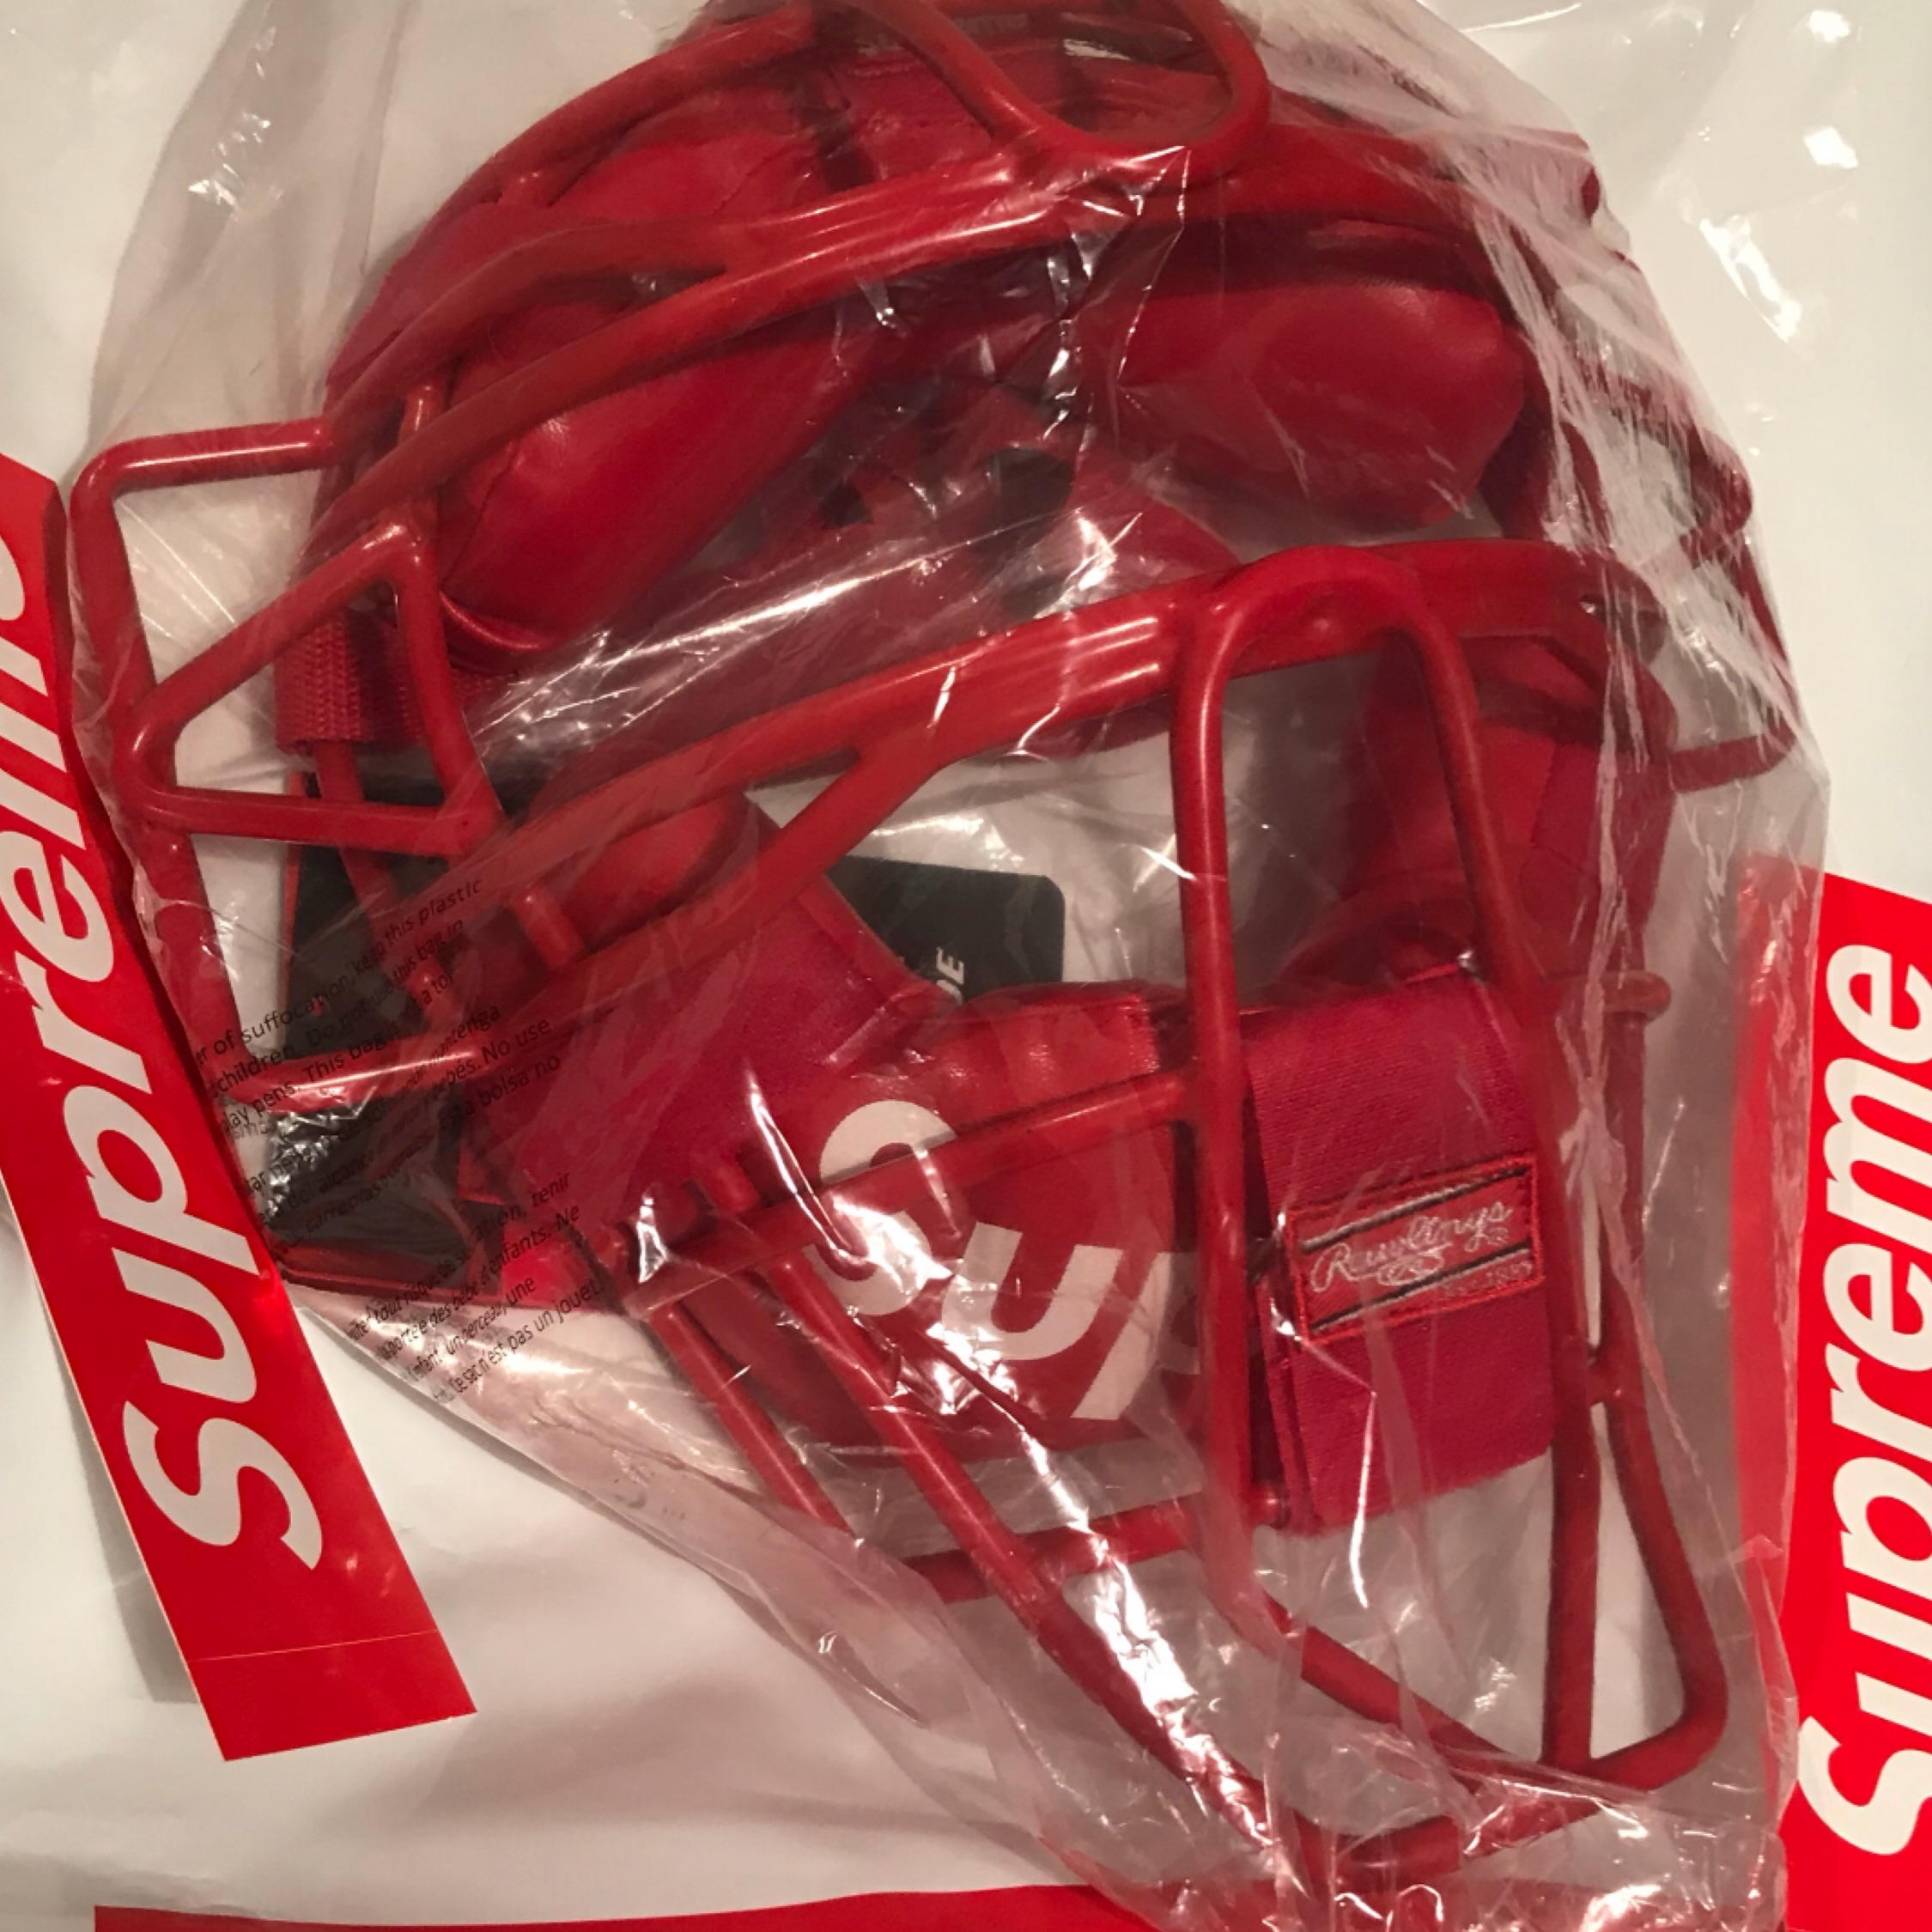 Ss18 Supreme X Rawlings Catcher's Mask